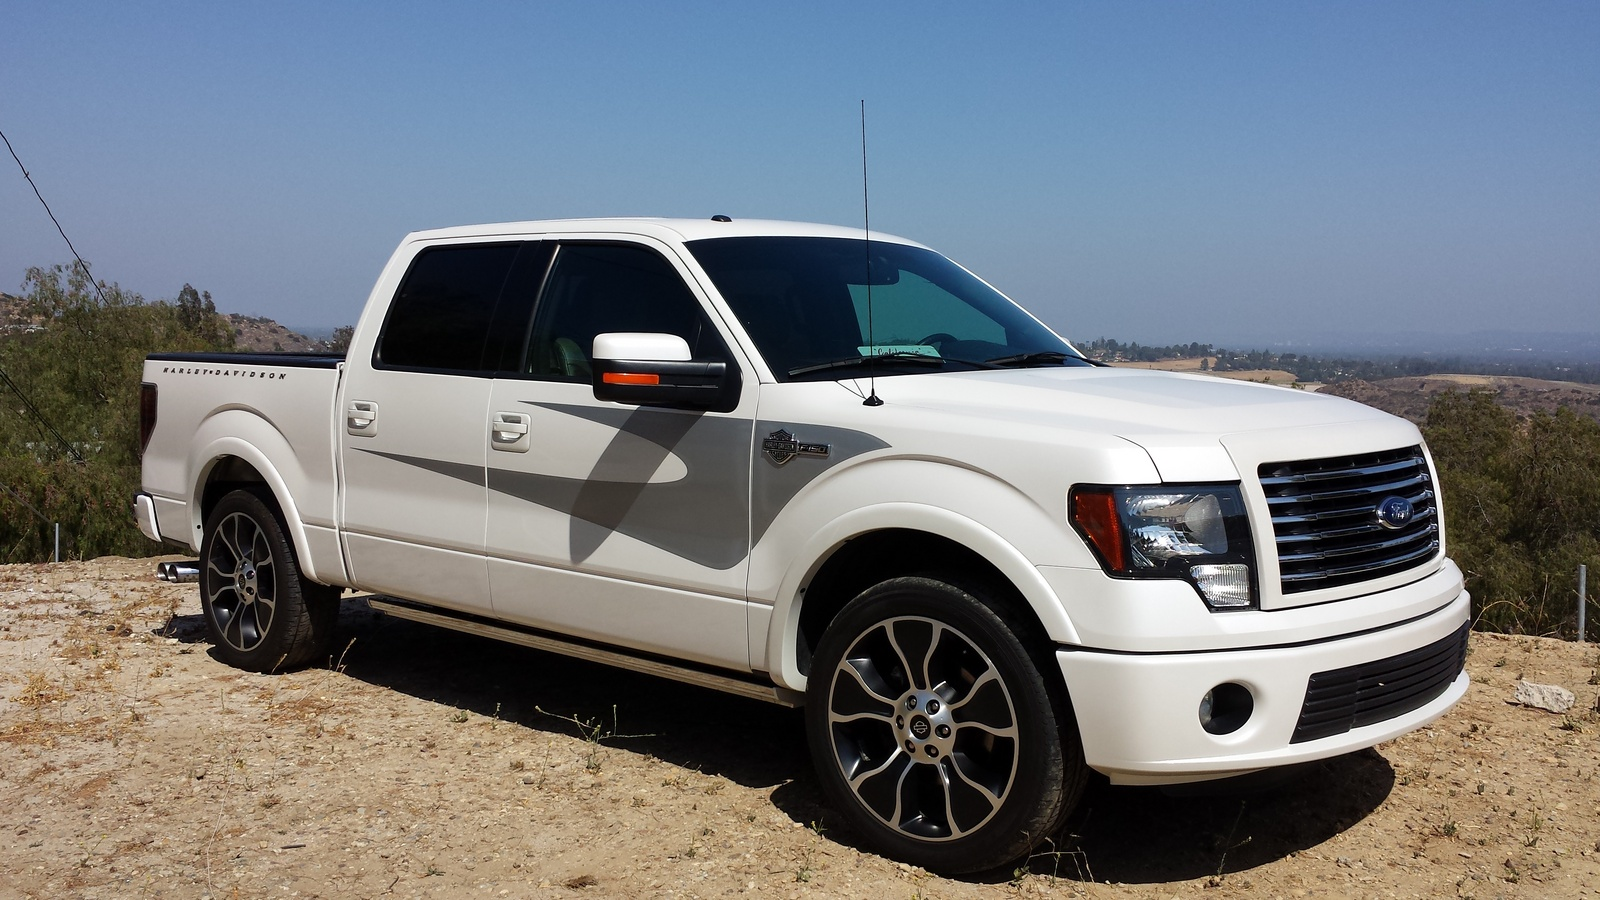 2012 Ford F-150 - Pictures